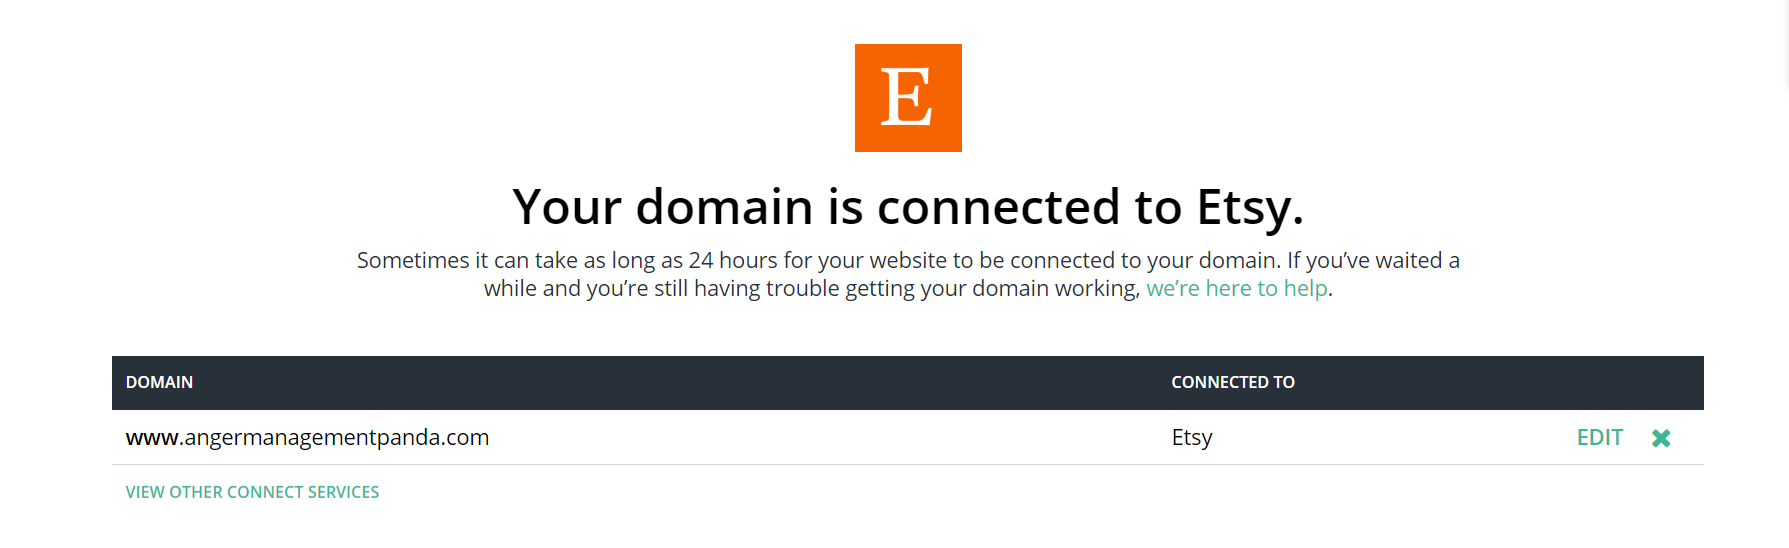 Your_domain_is_connected.png